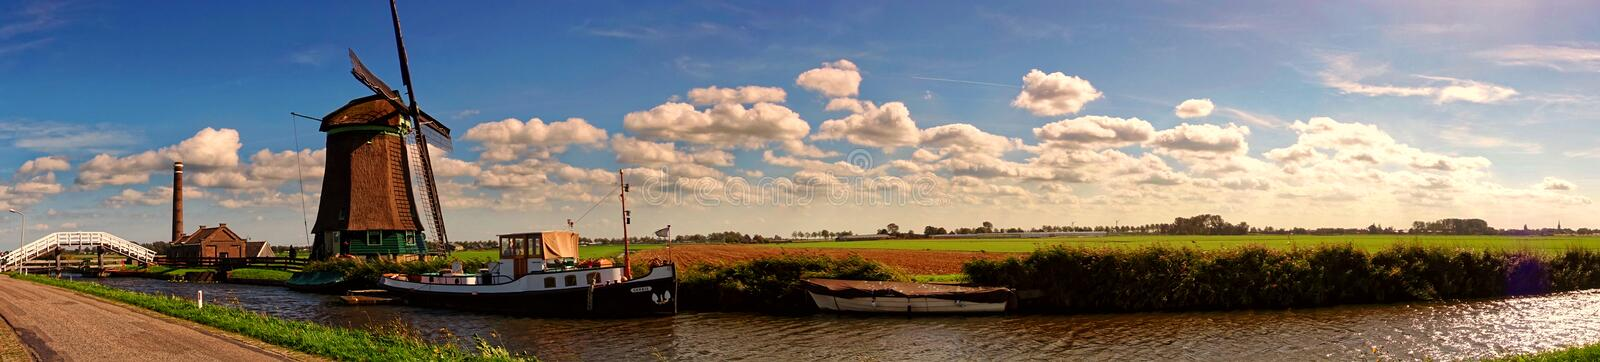 The Pano Dutch Landscape Free Public Domain Cc0 Image